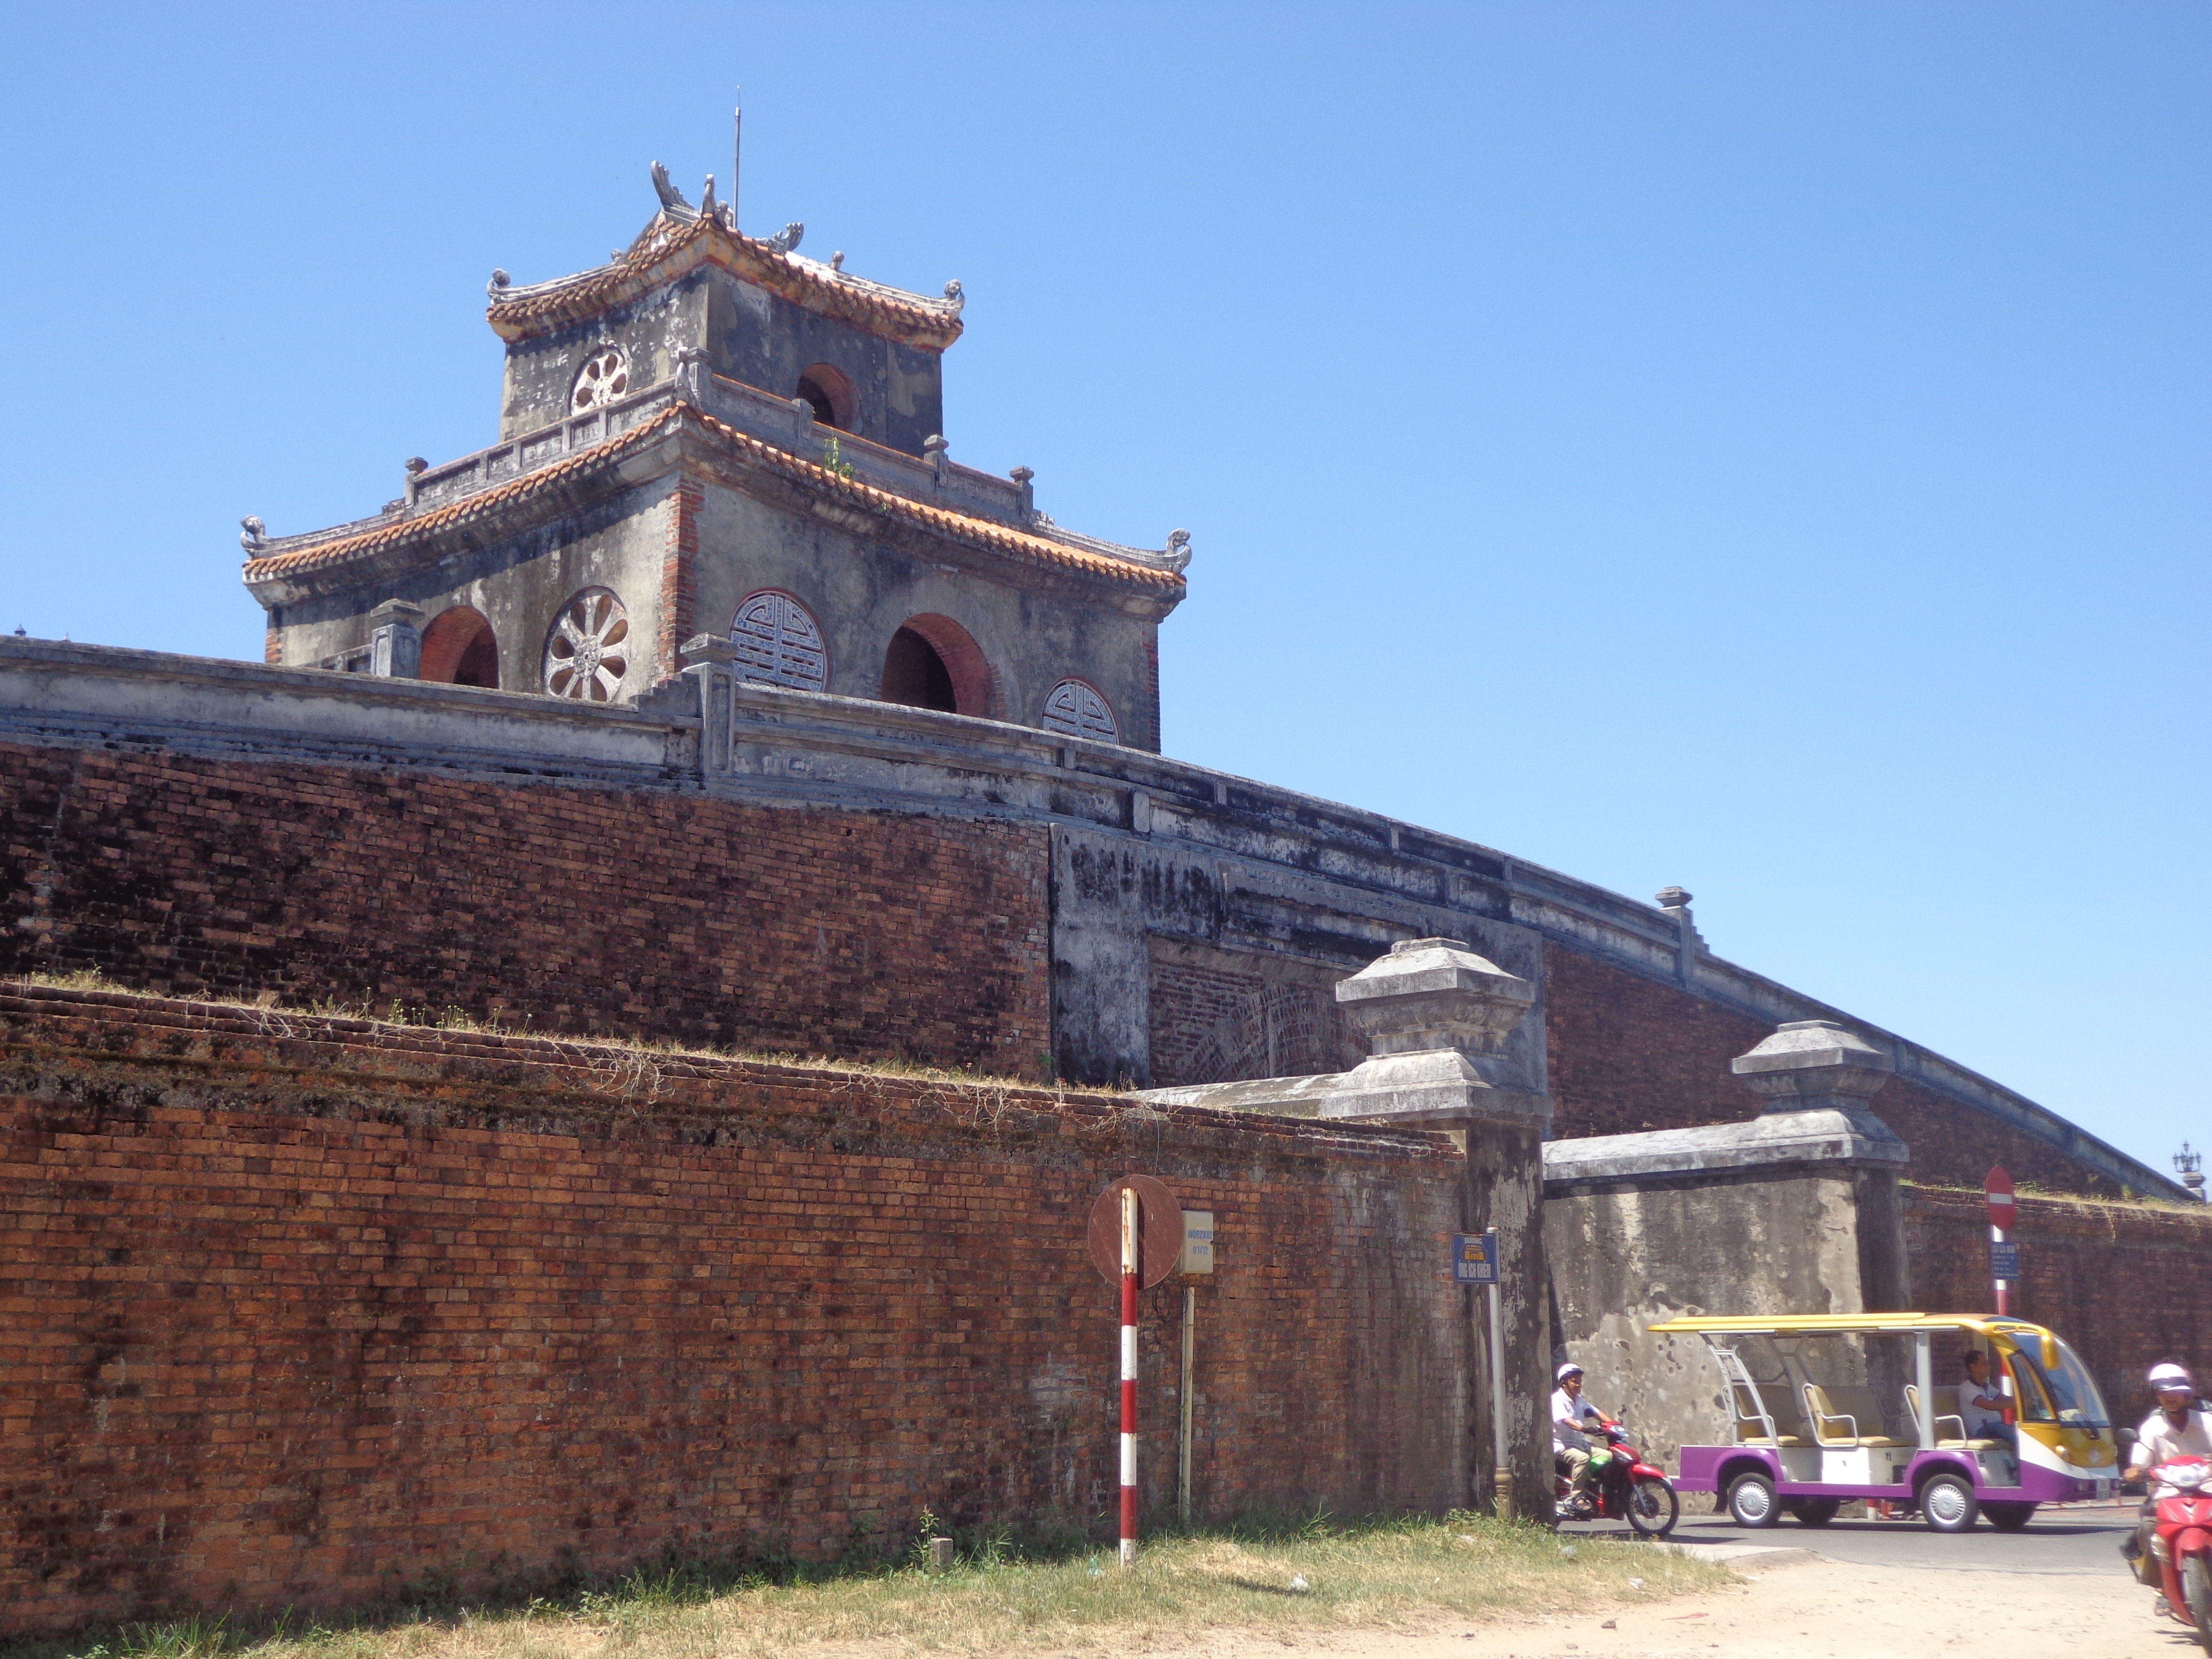 The outer walls of the forbidden city.